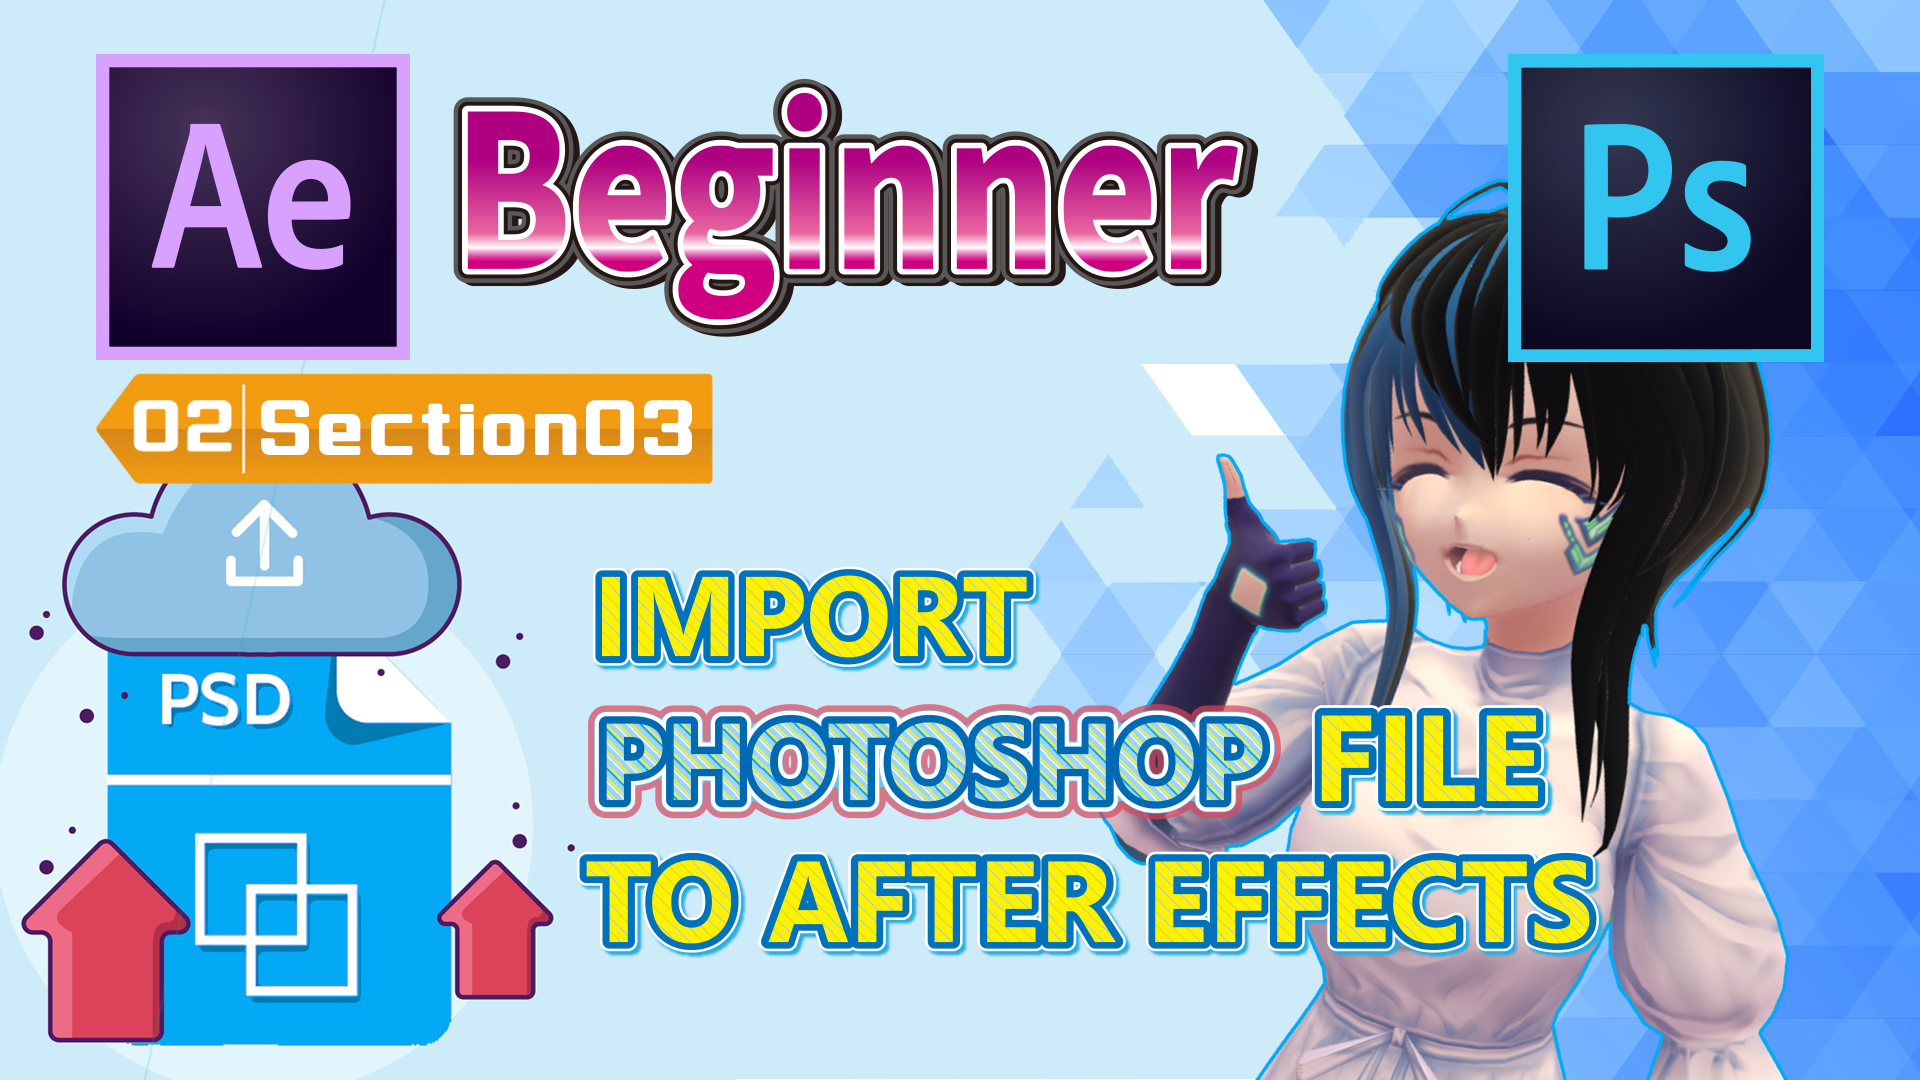 IMPORT PHOTOSHOP FILE TO AFTER EFFECTS